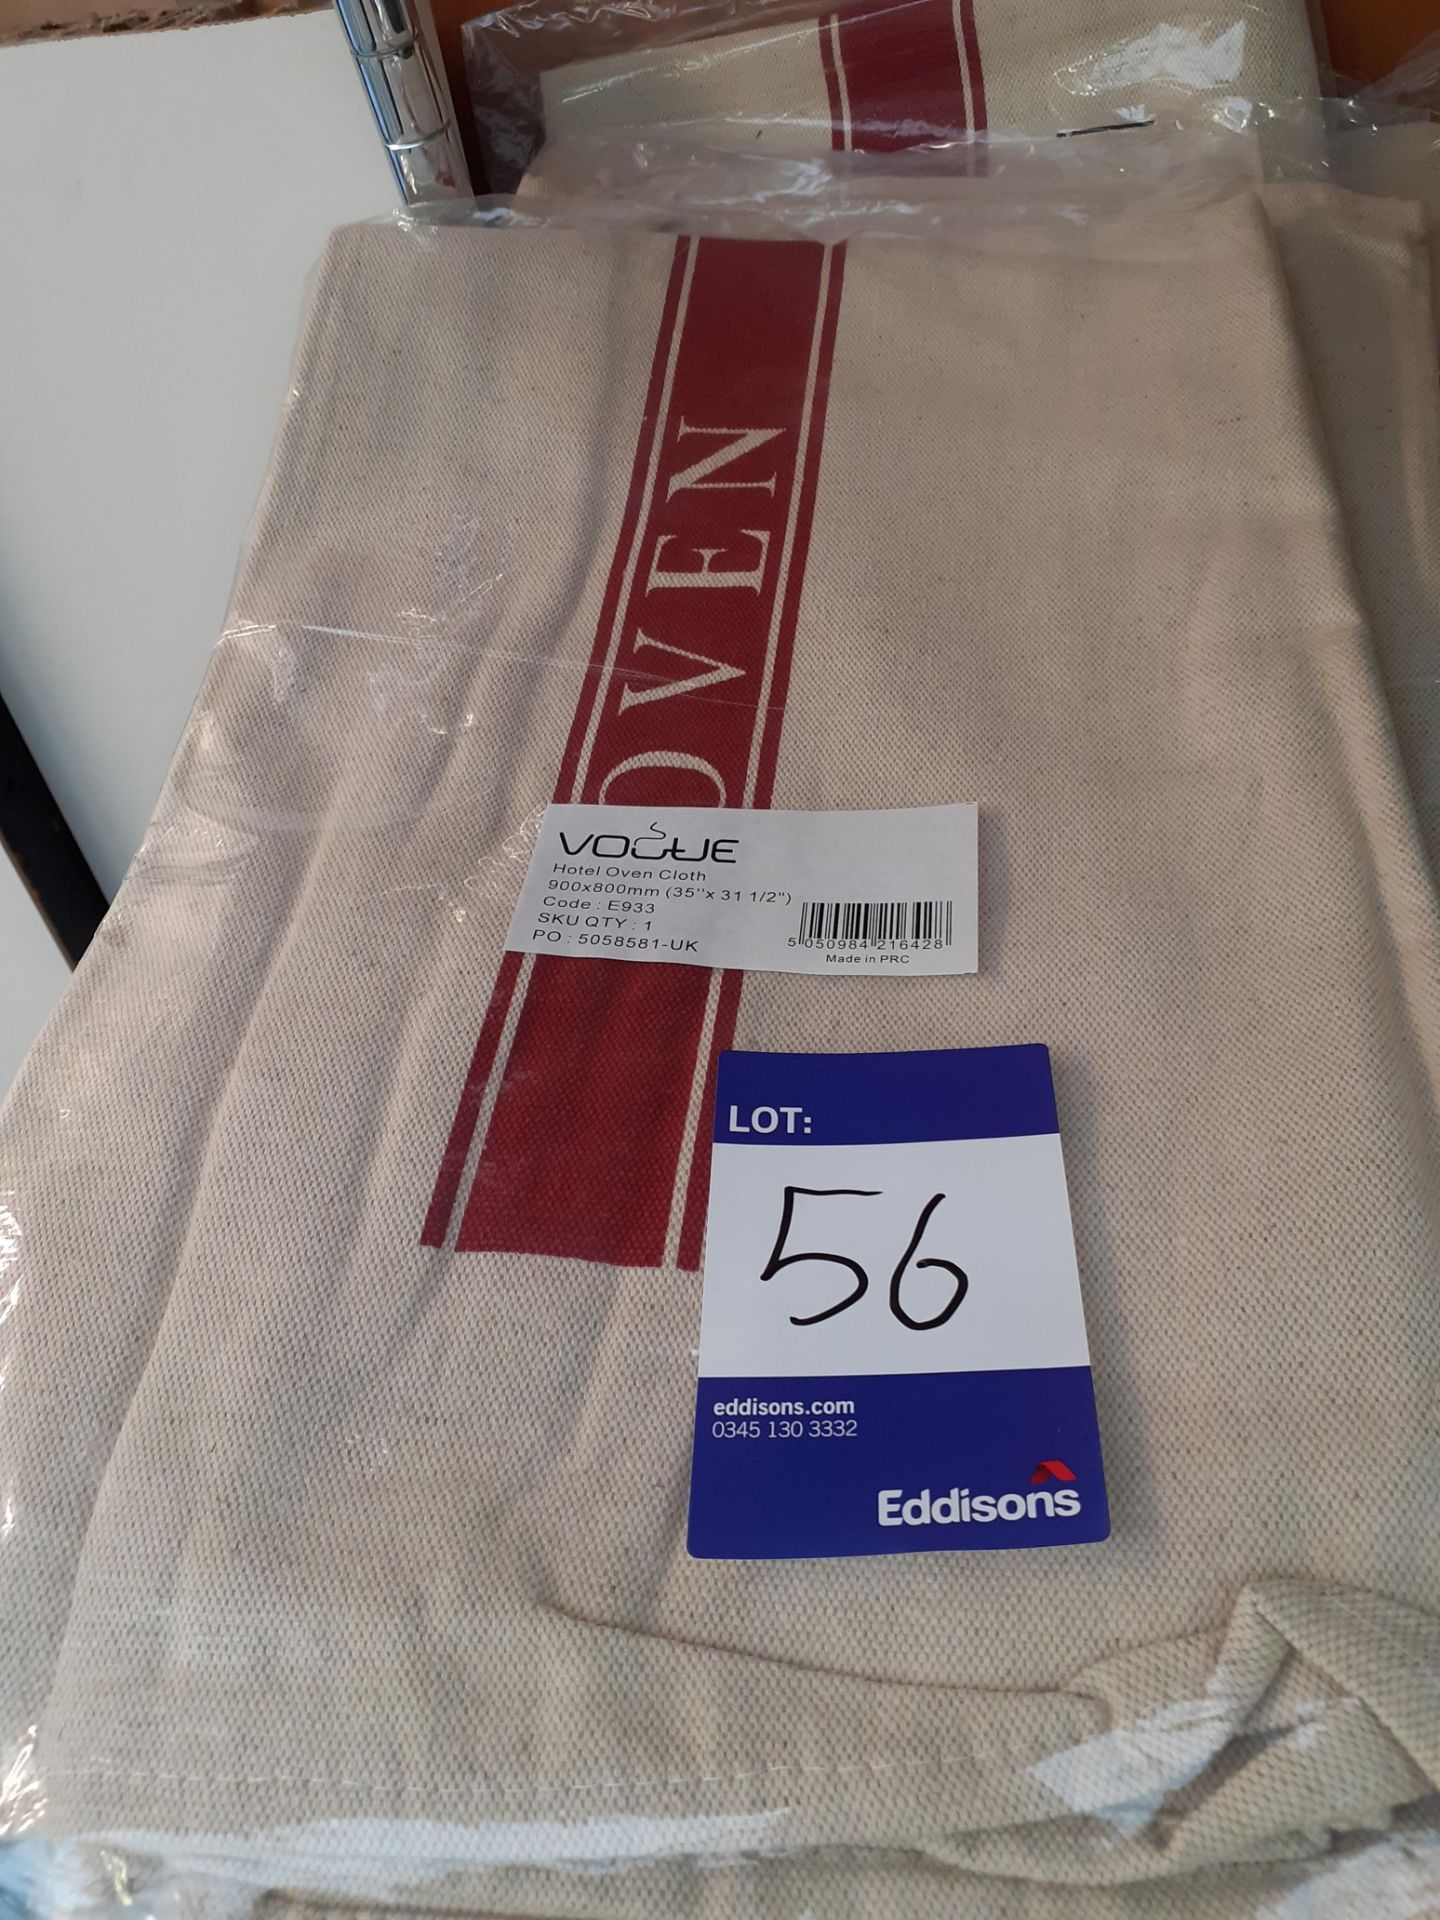 Quantity of Kitchen Linen including Chef Work Apro - Image 4 of 4